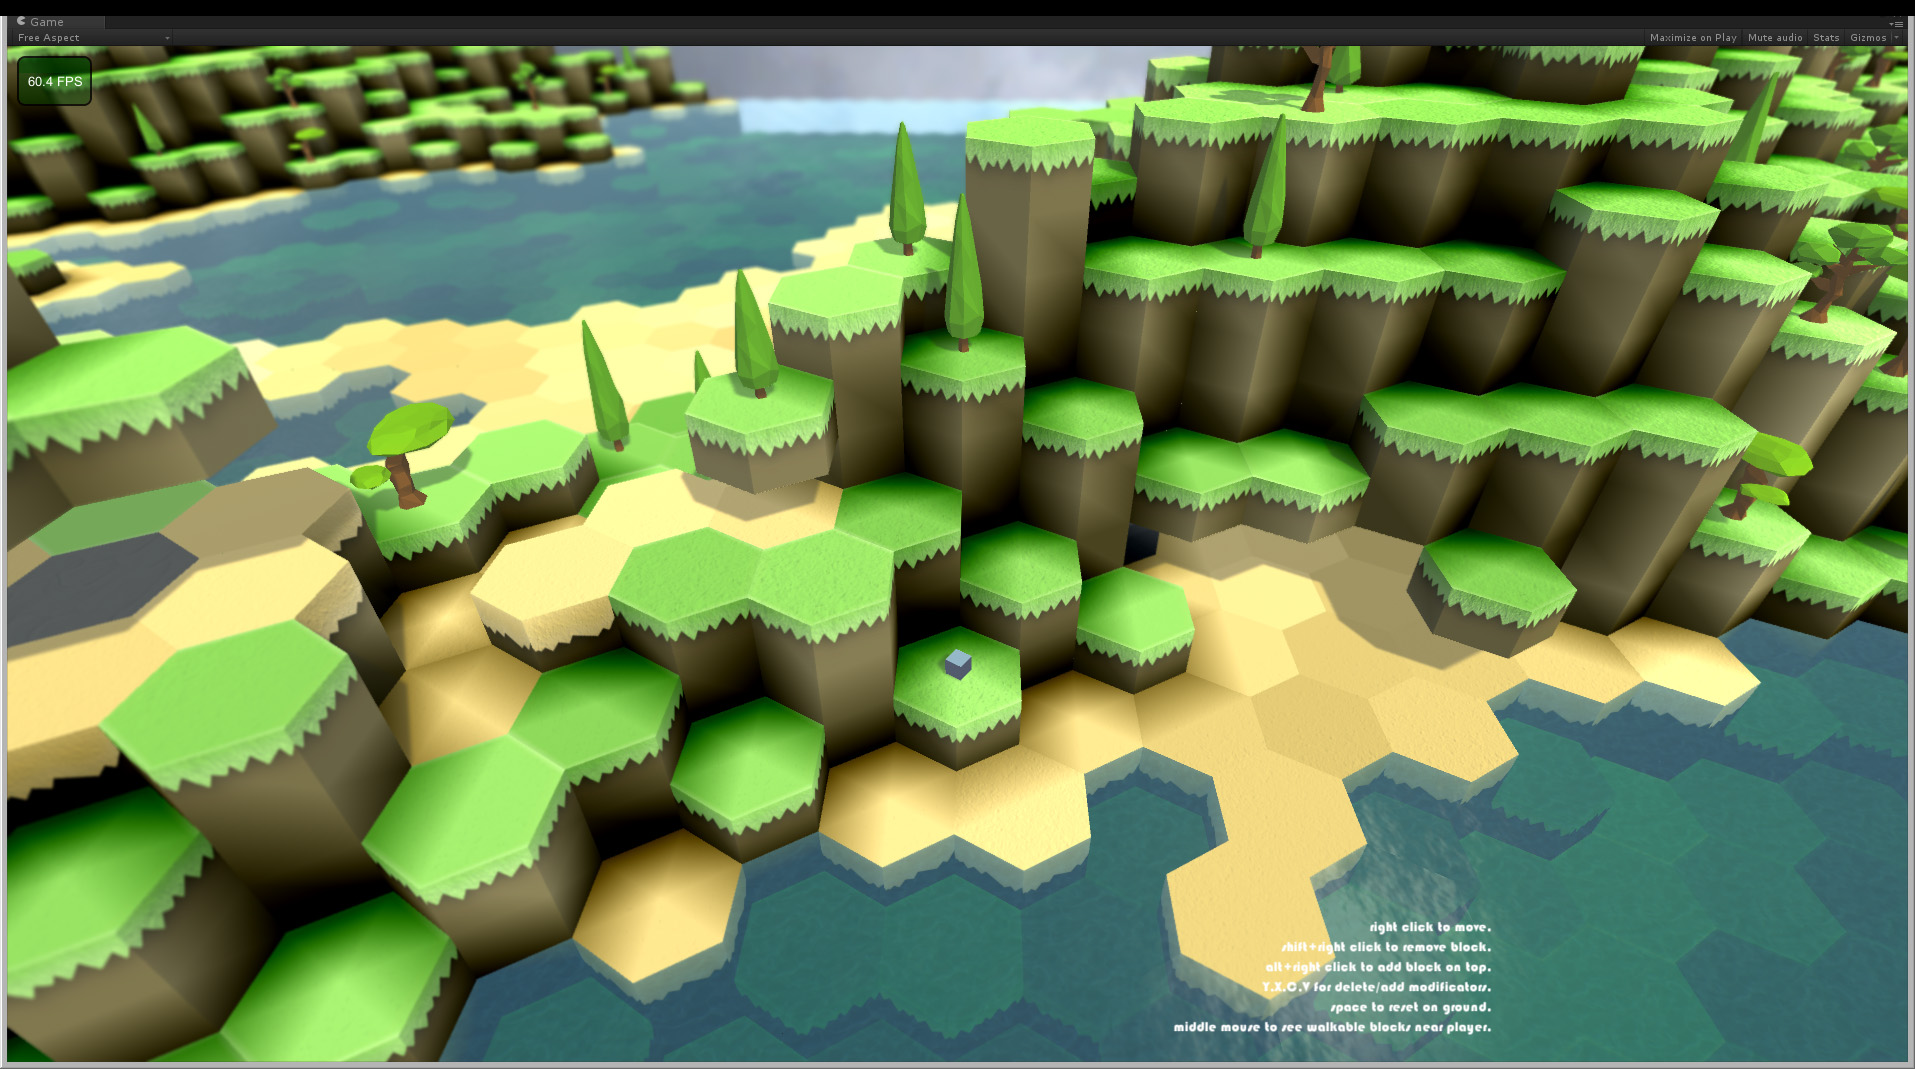 Procedural Hex-Voxel-World looking for gameplay    - Unity Forum